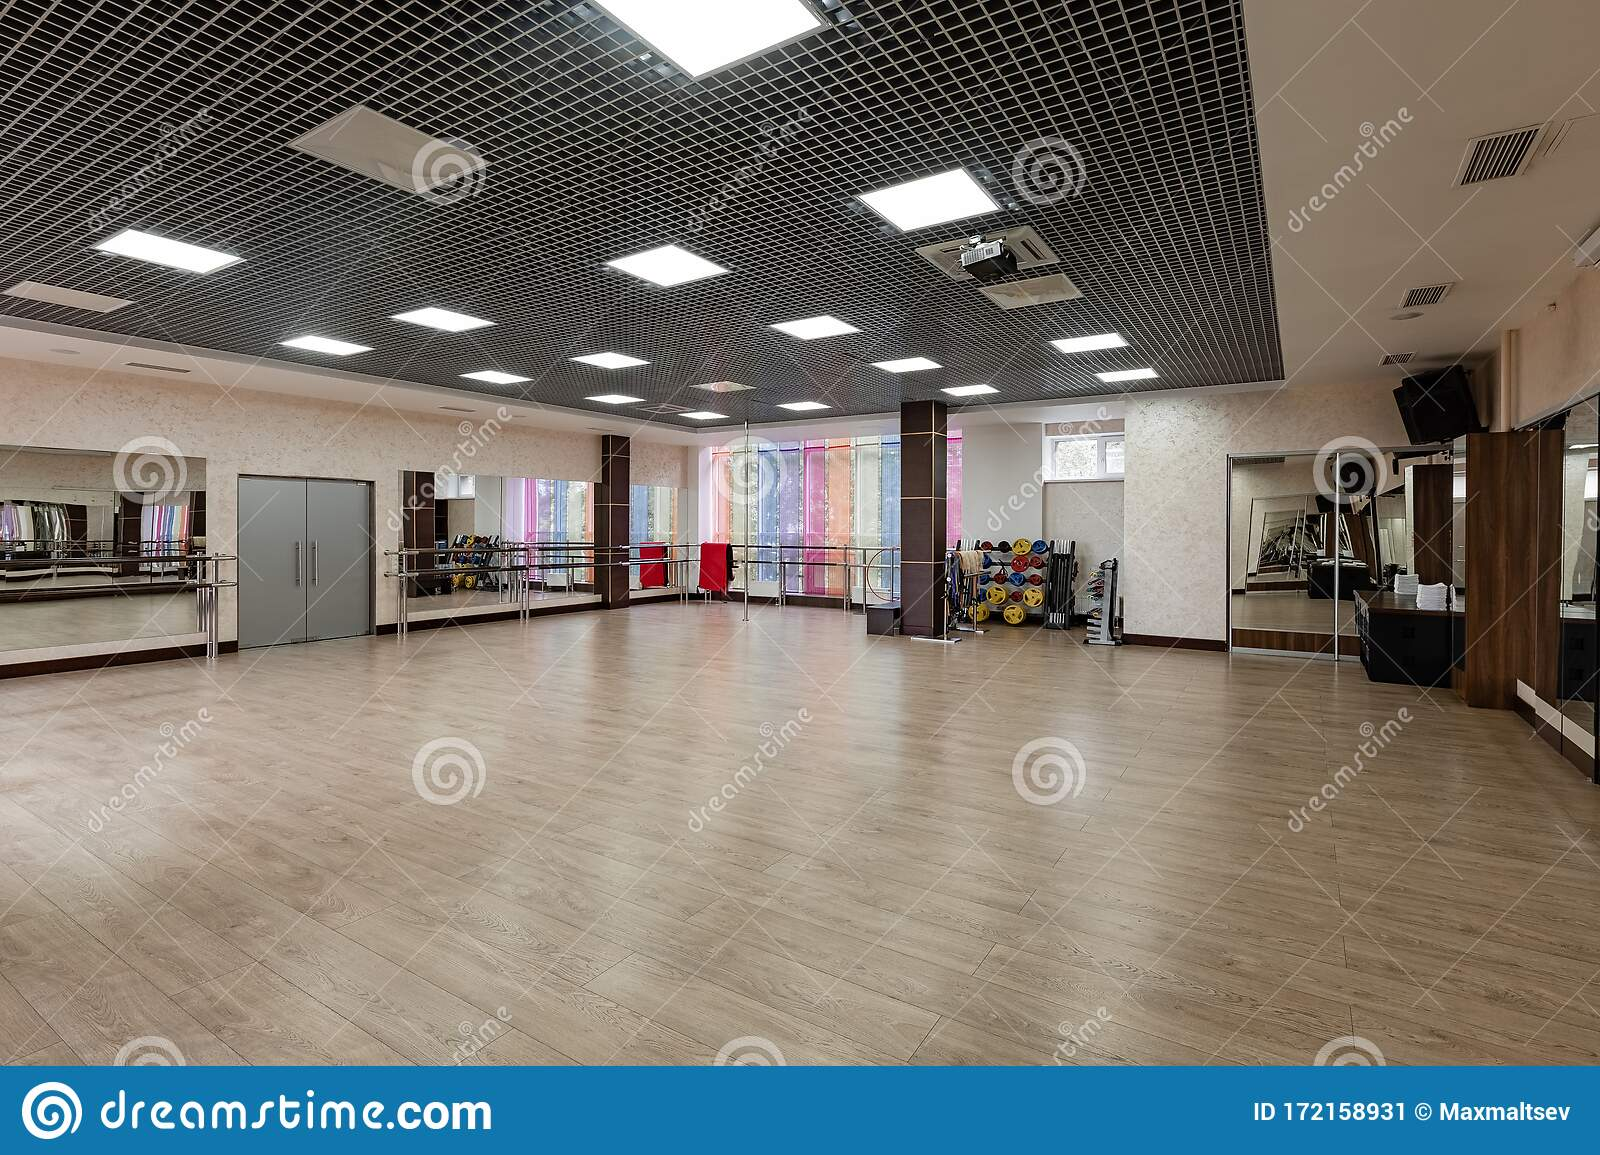 Group Fitness Room Modern Interior Design Fitness Workout Fitness Gym Background Gym Equipment Background Empty Stock Image Image Of Interior Flexibility 172158931